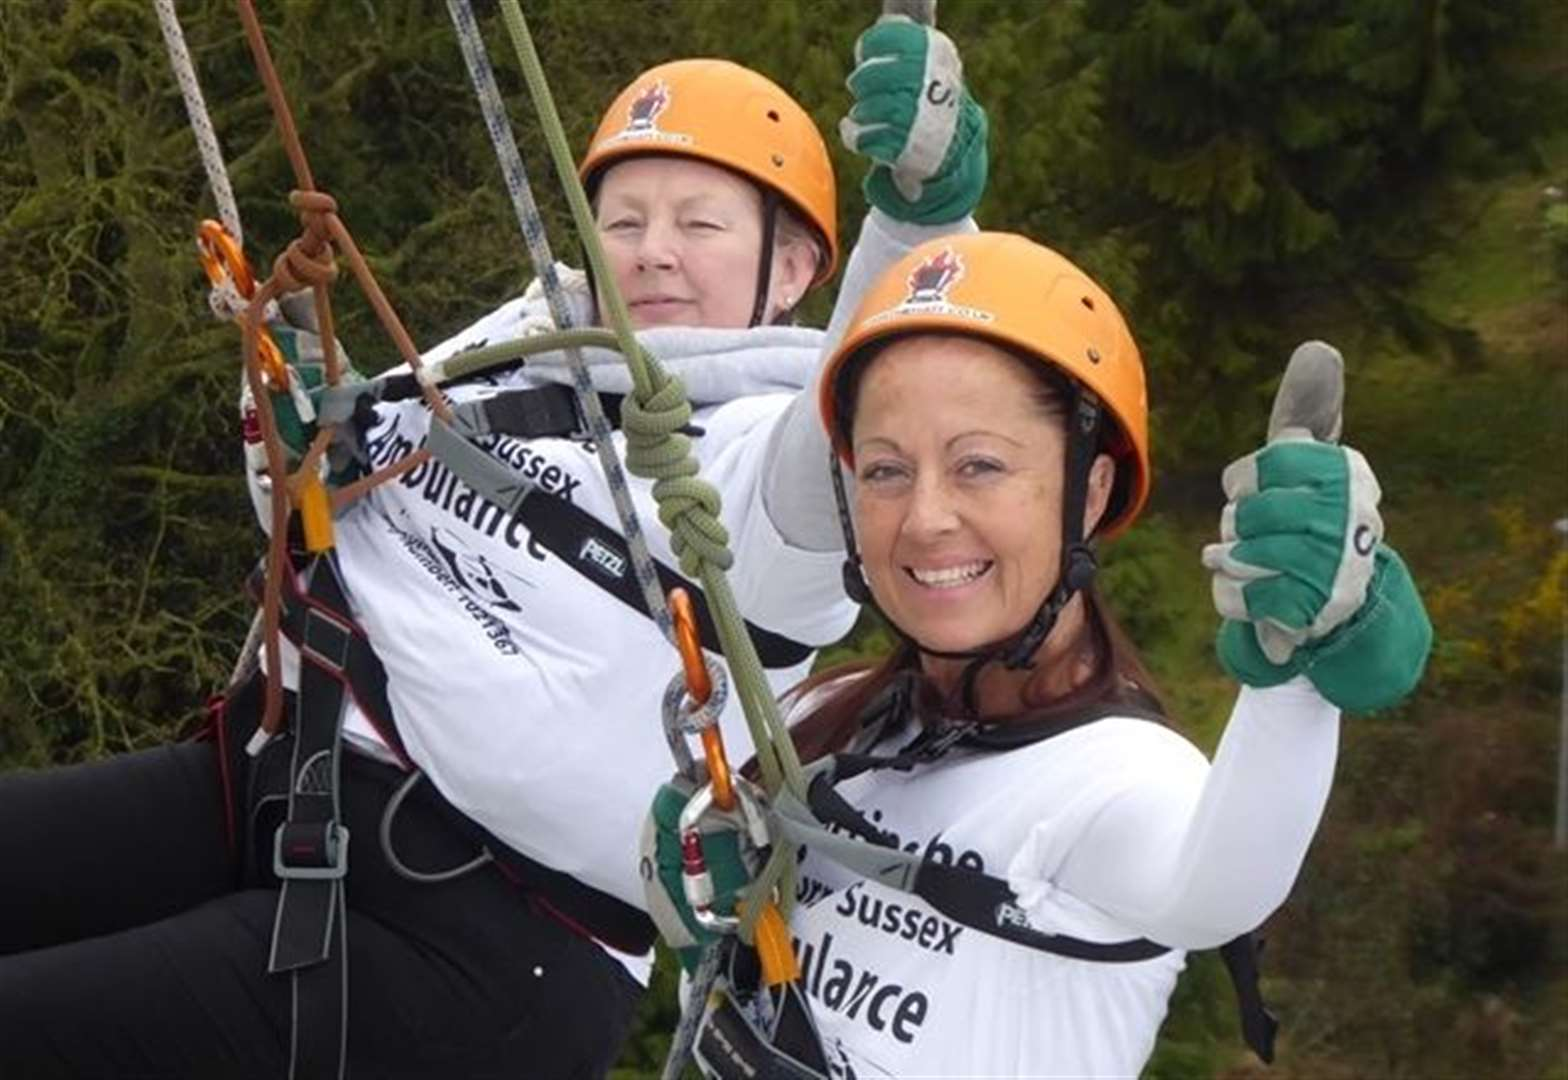 Charity abseil cancelled